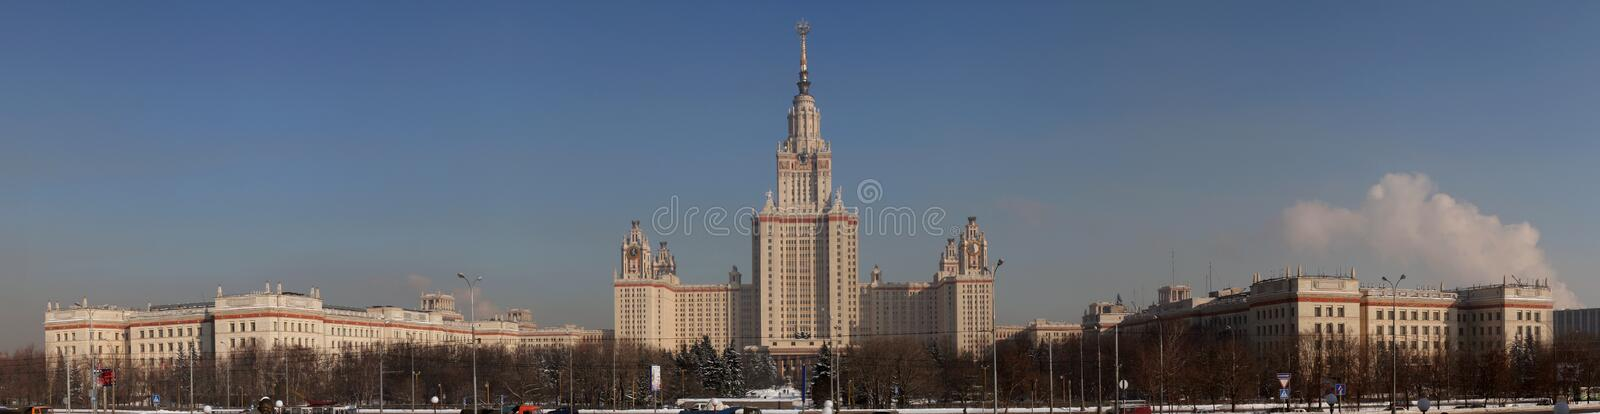 Moscow State University (front, winter) royalty free stock image